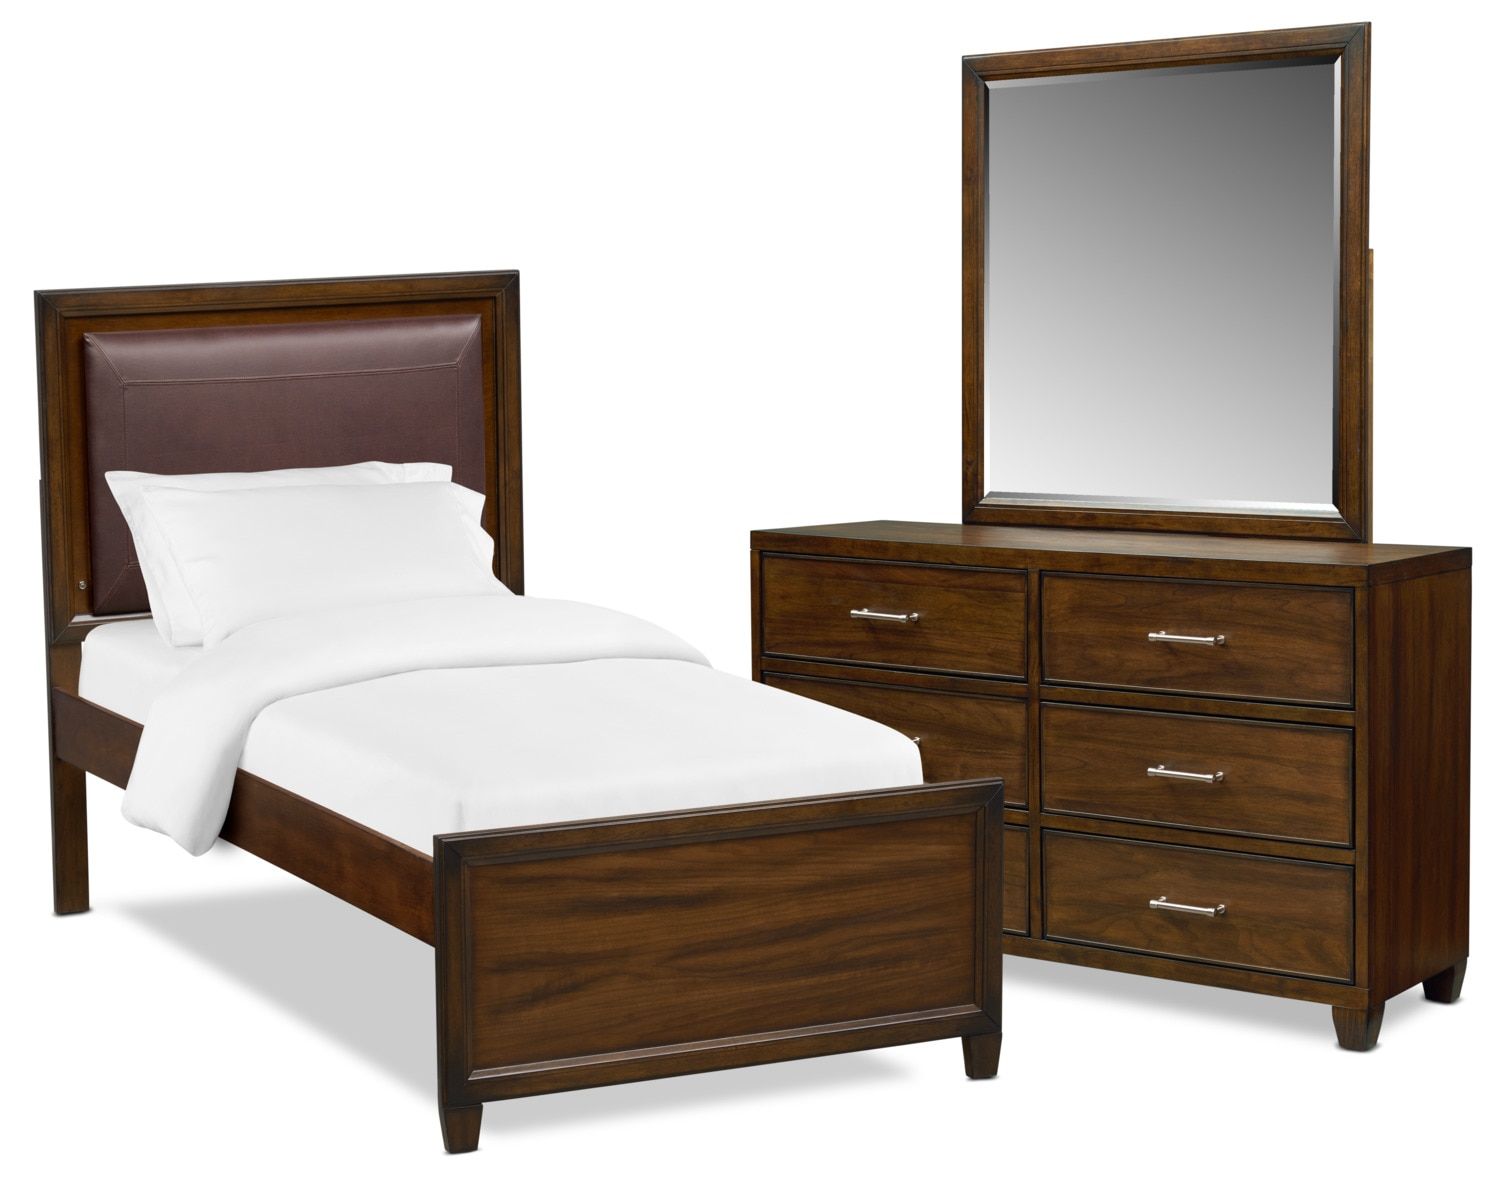 Bedroom Furniture - Sullivan 5-Piece Upholstered Bedroom Set with Dresser and Mirror